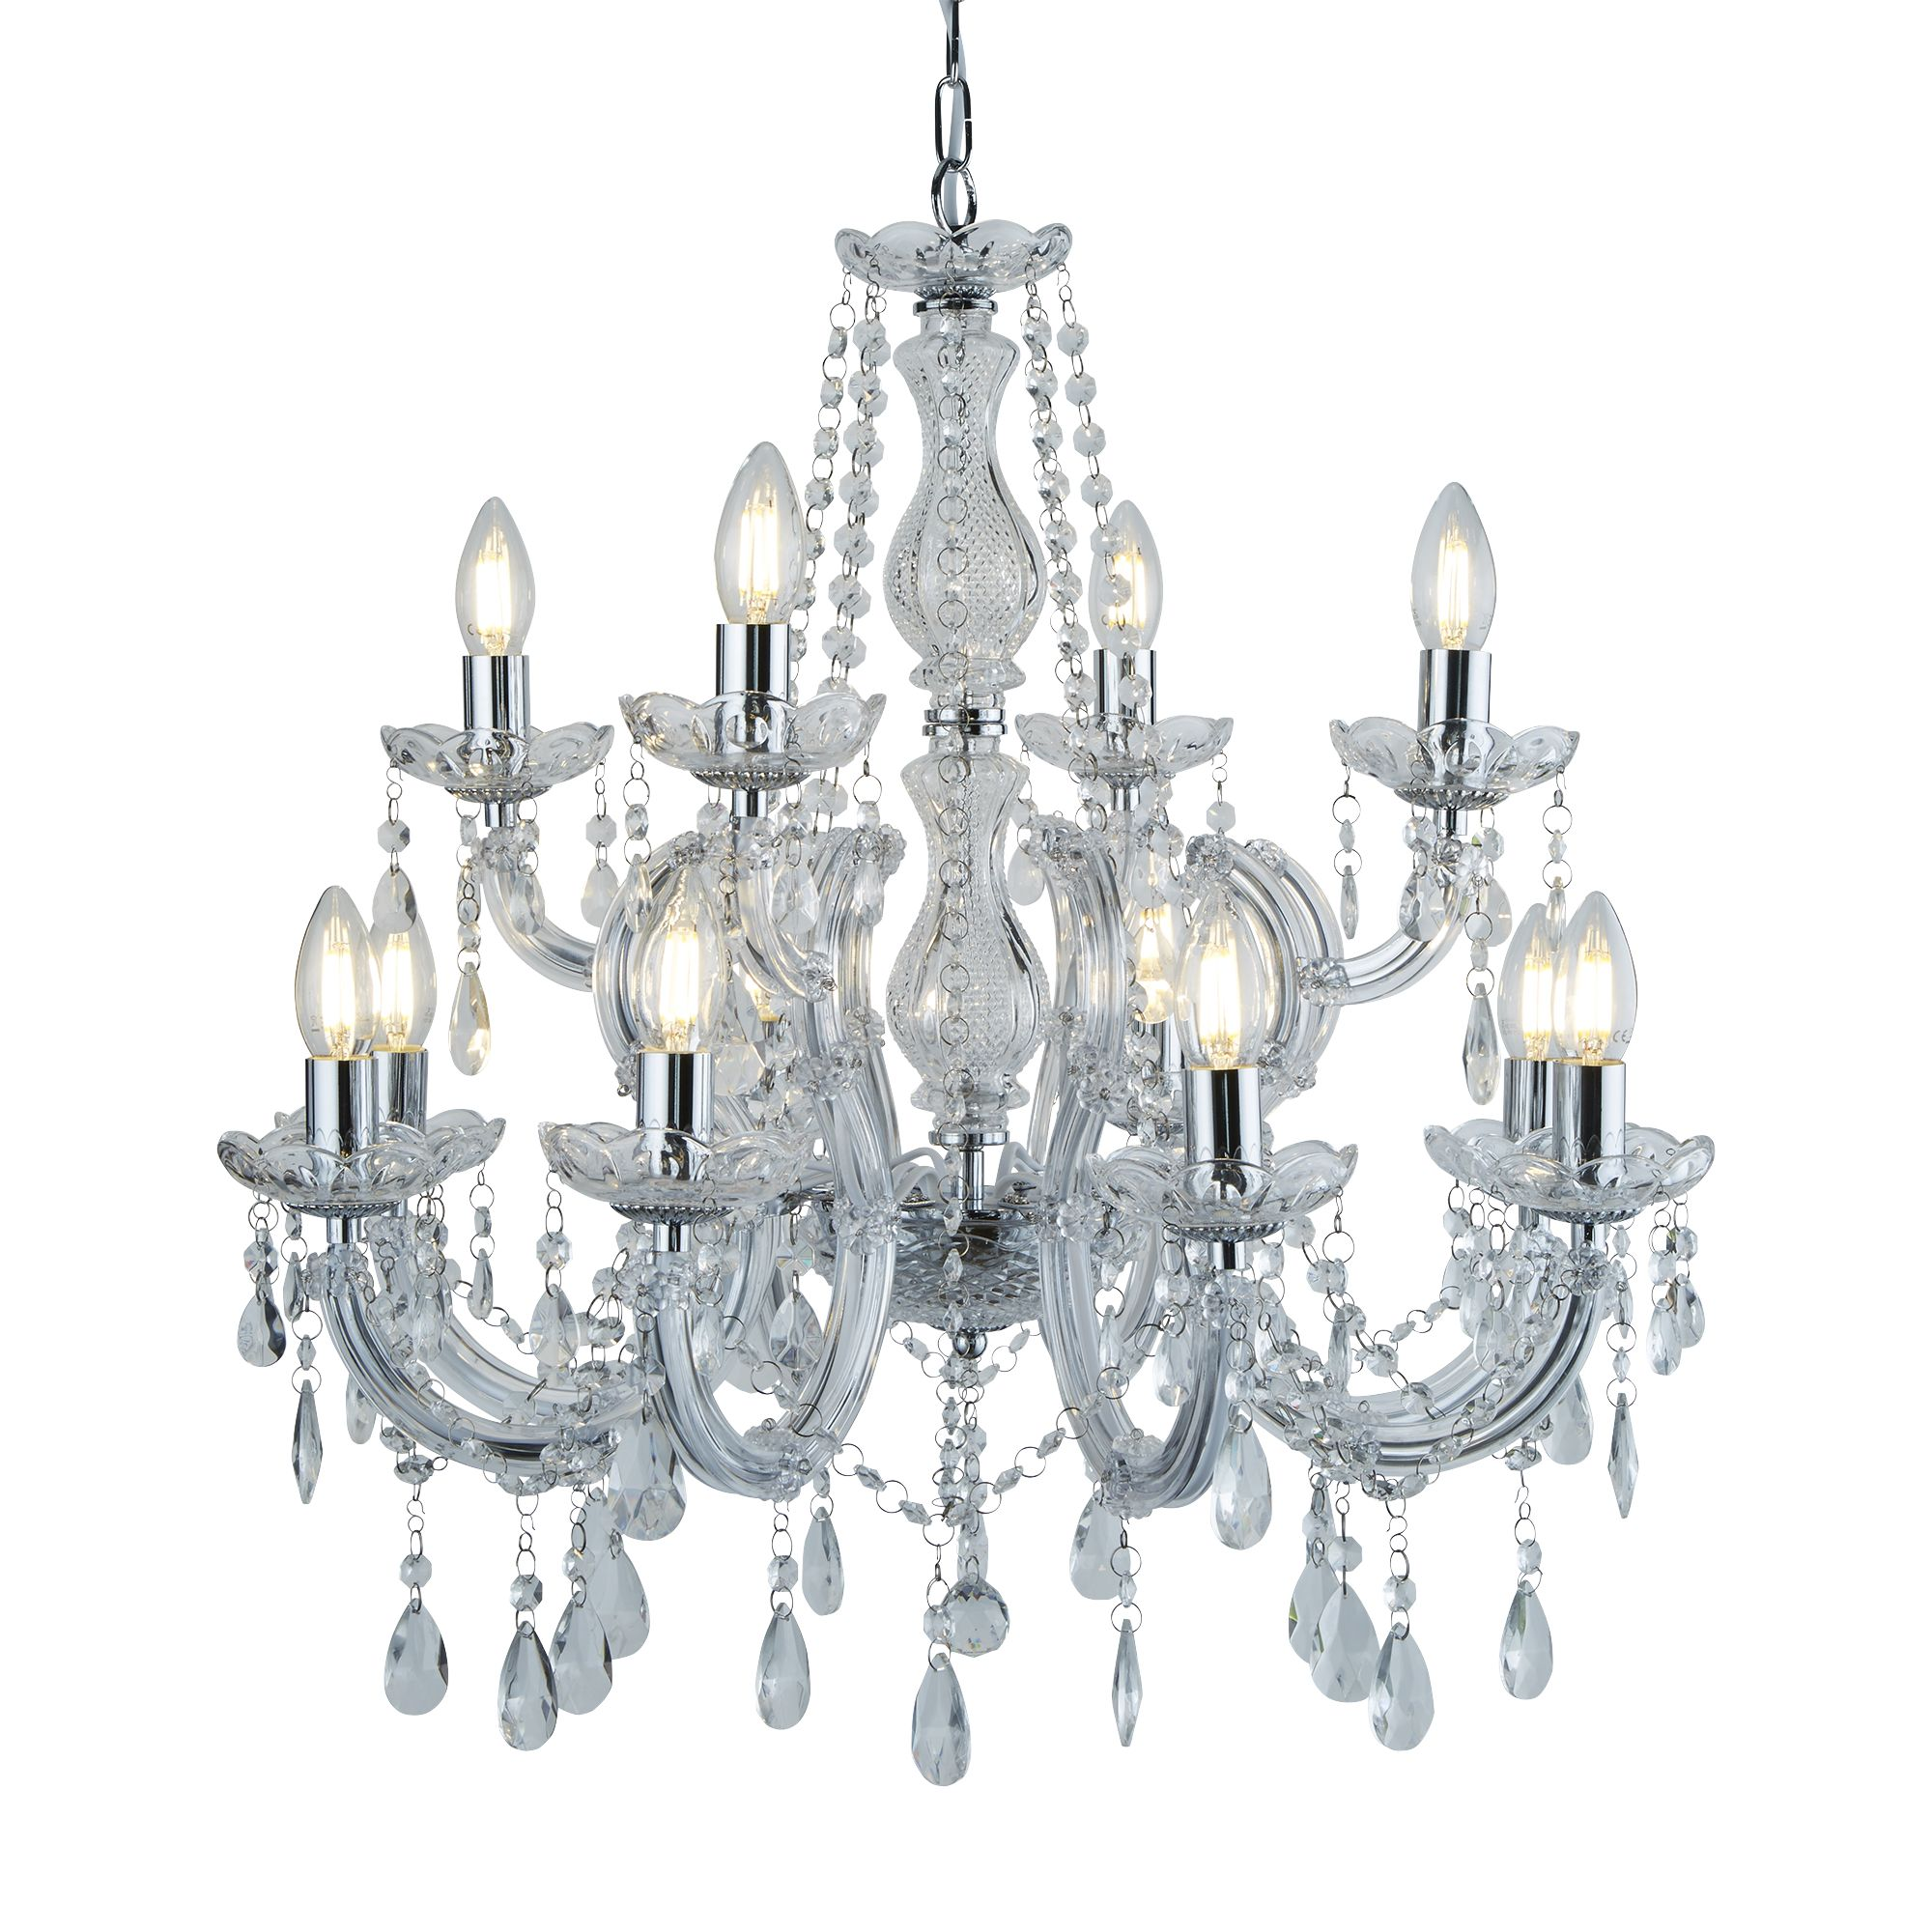 Marie Therese 3 Light Chandelier Chrome, Pendants, Crystal